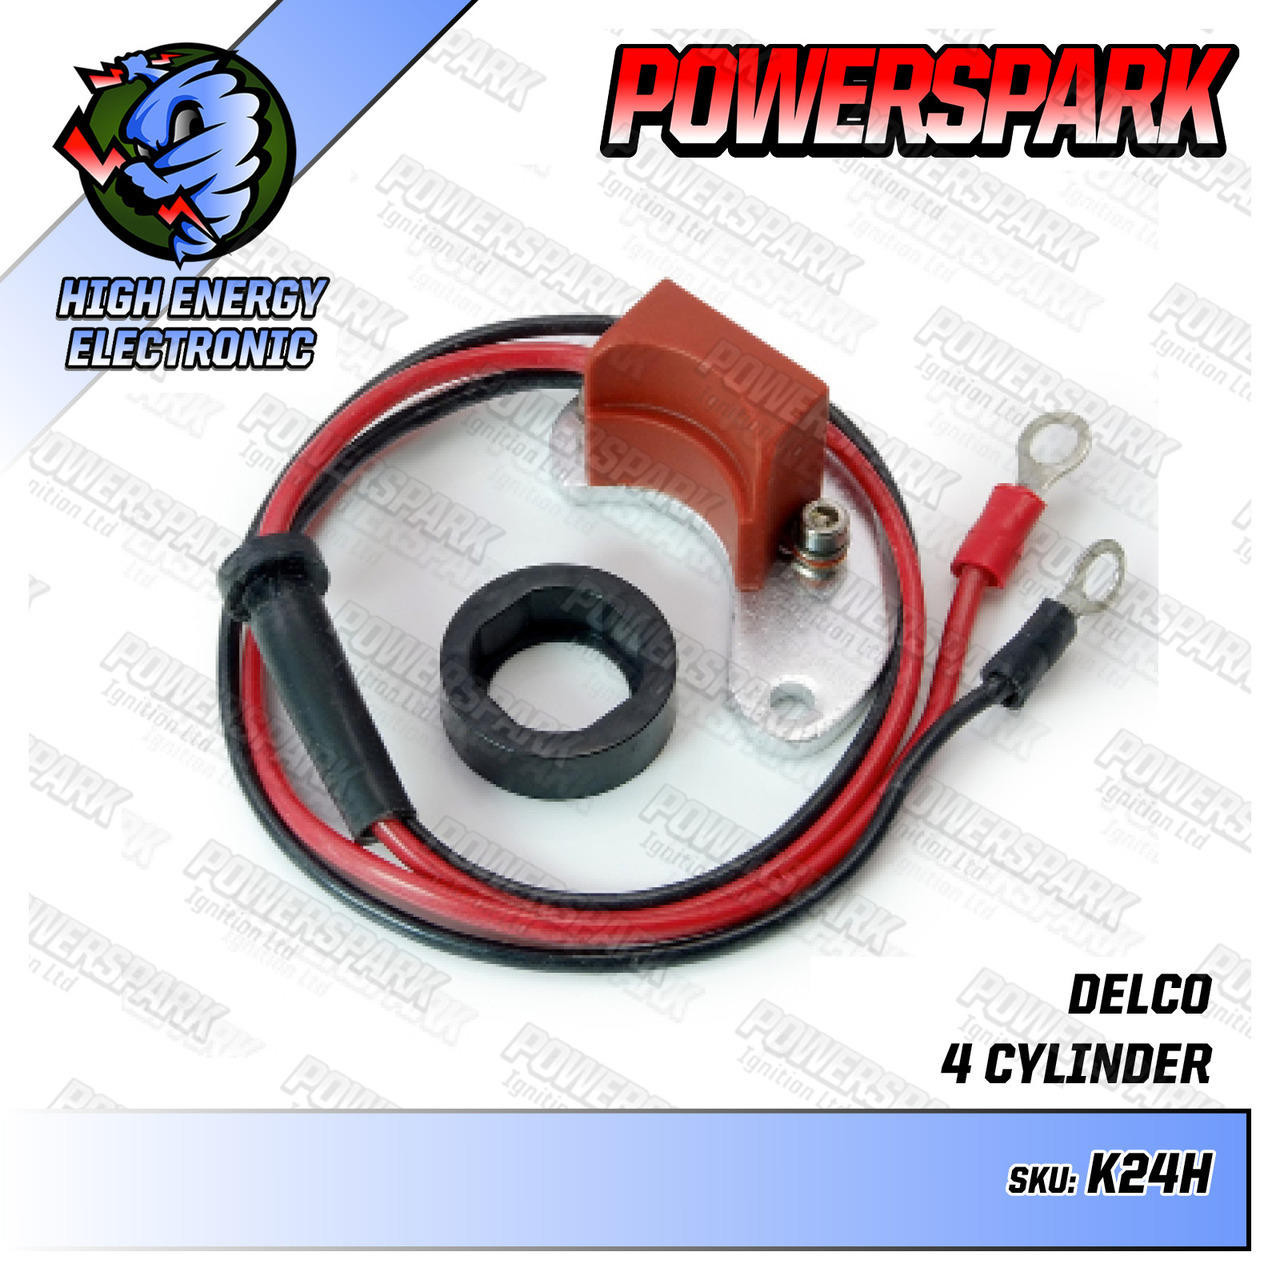 Powerspark Powerspark Electronic Ignition Kit for Delco 4 Cyl Distributor High Energy K24h